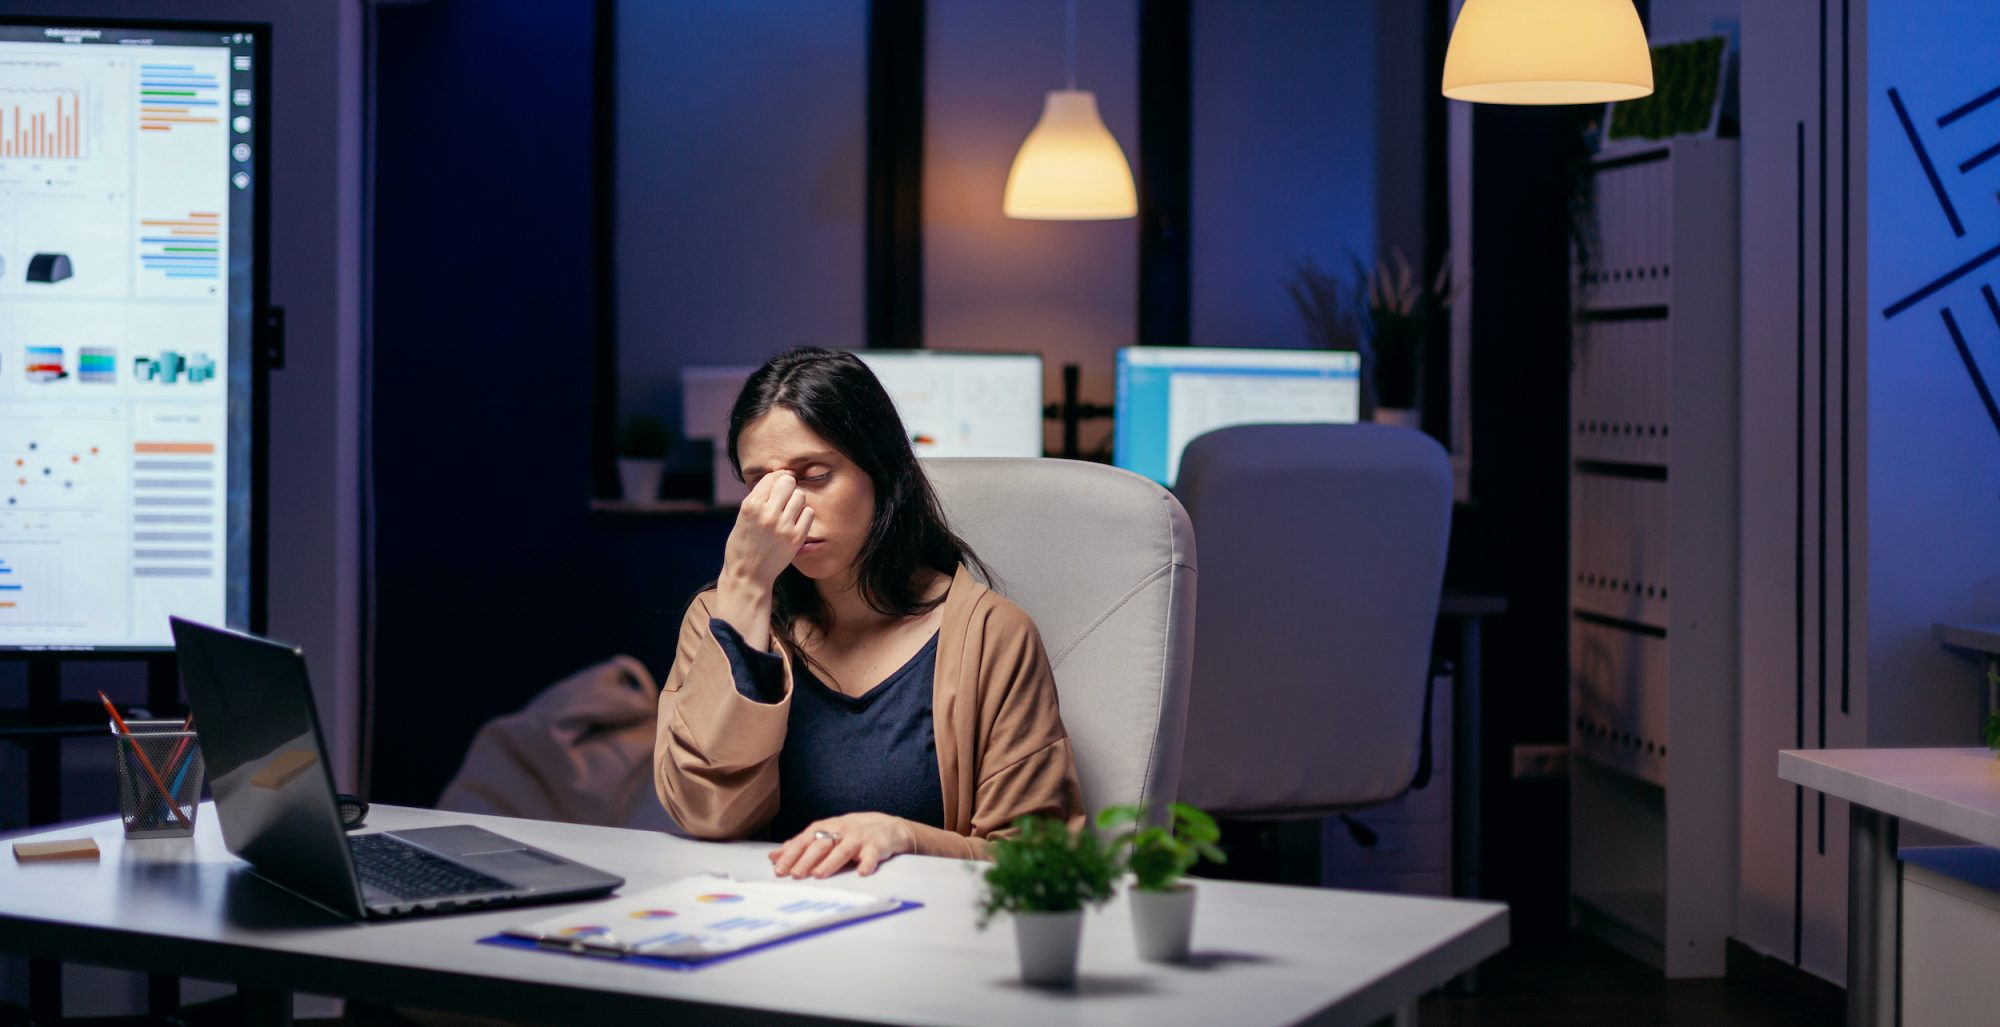 Staying up late at night leads to premature death